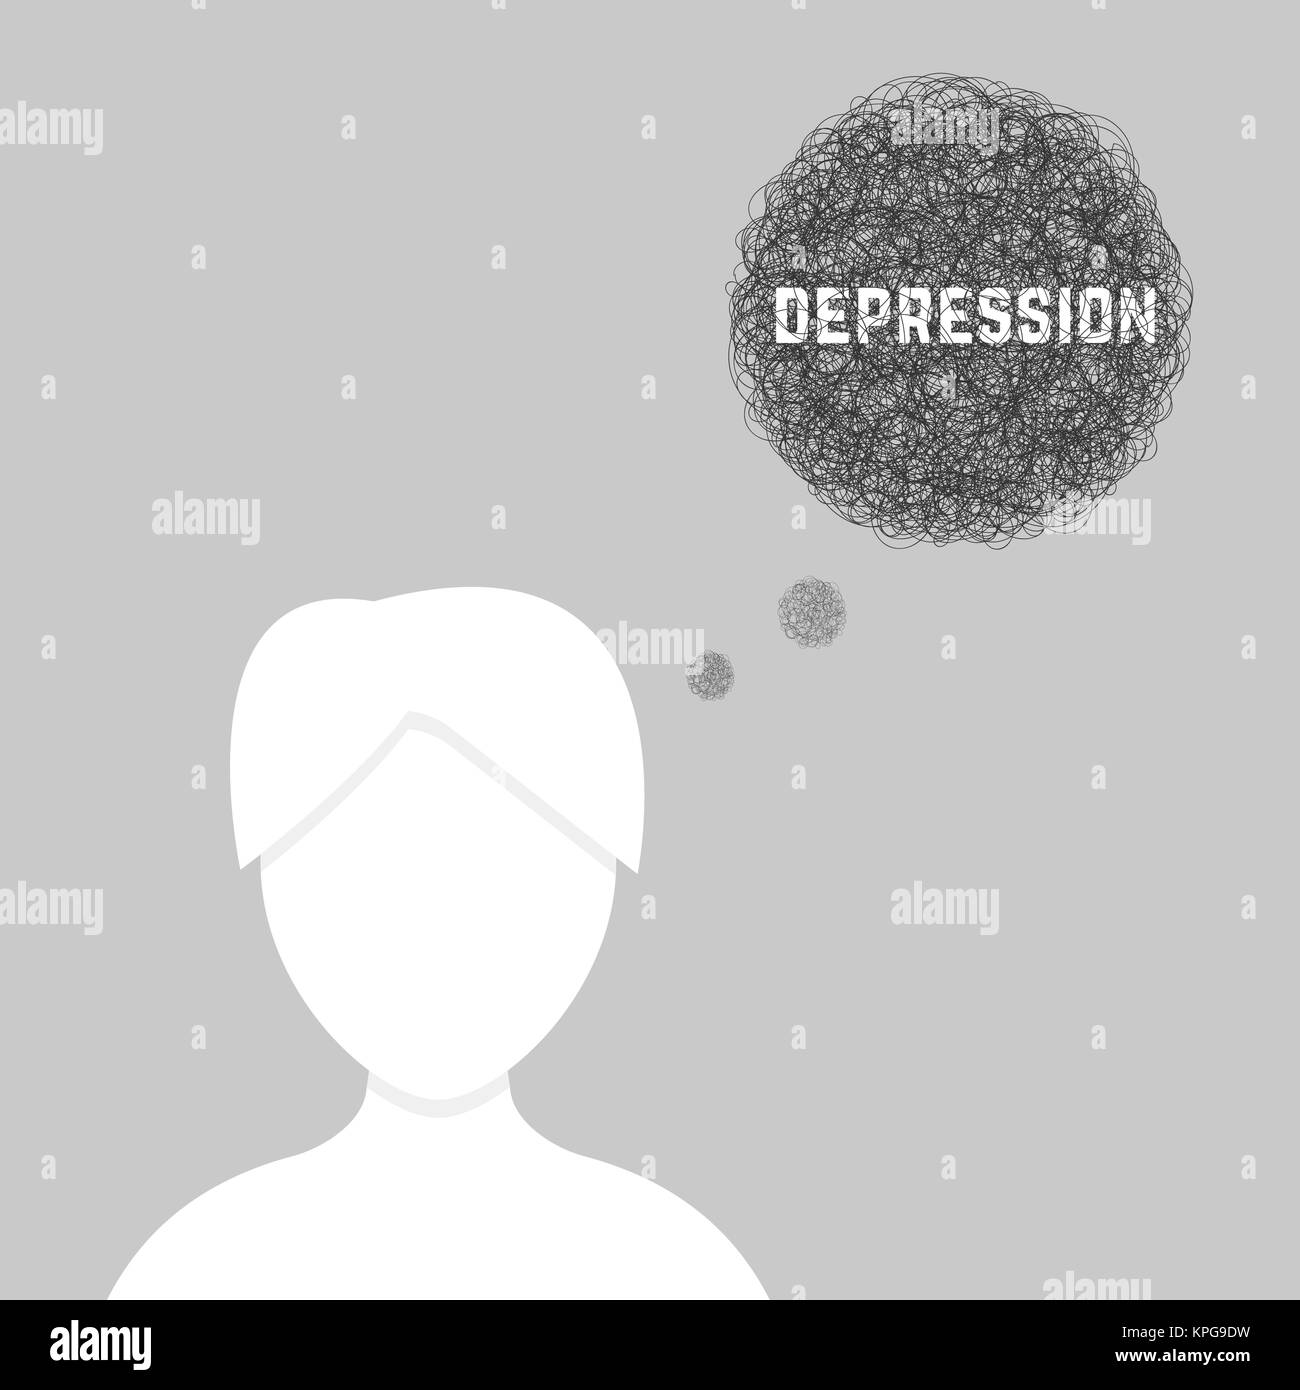 silhouette of woman in depression - Stock Image